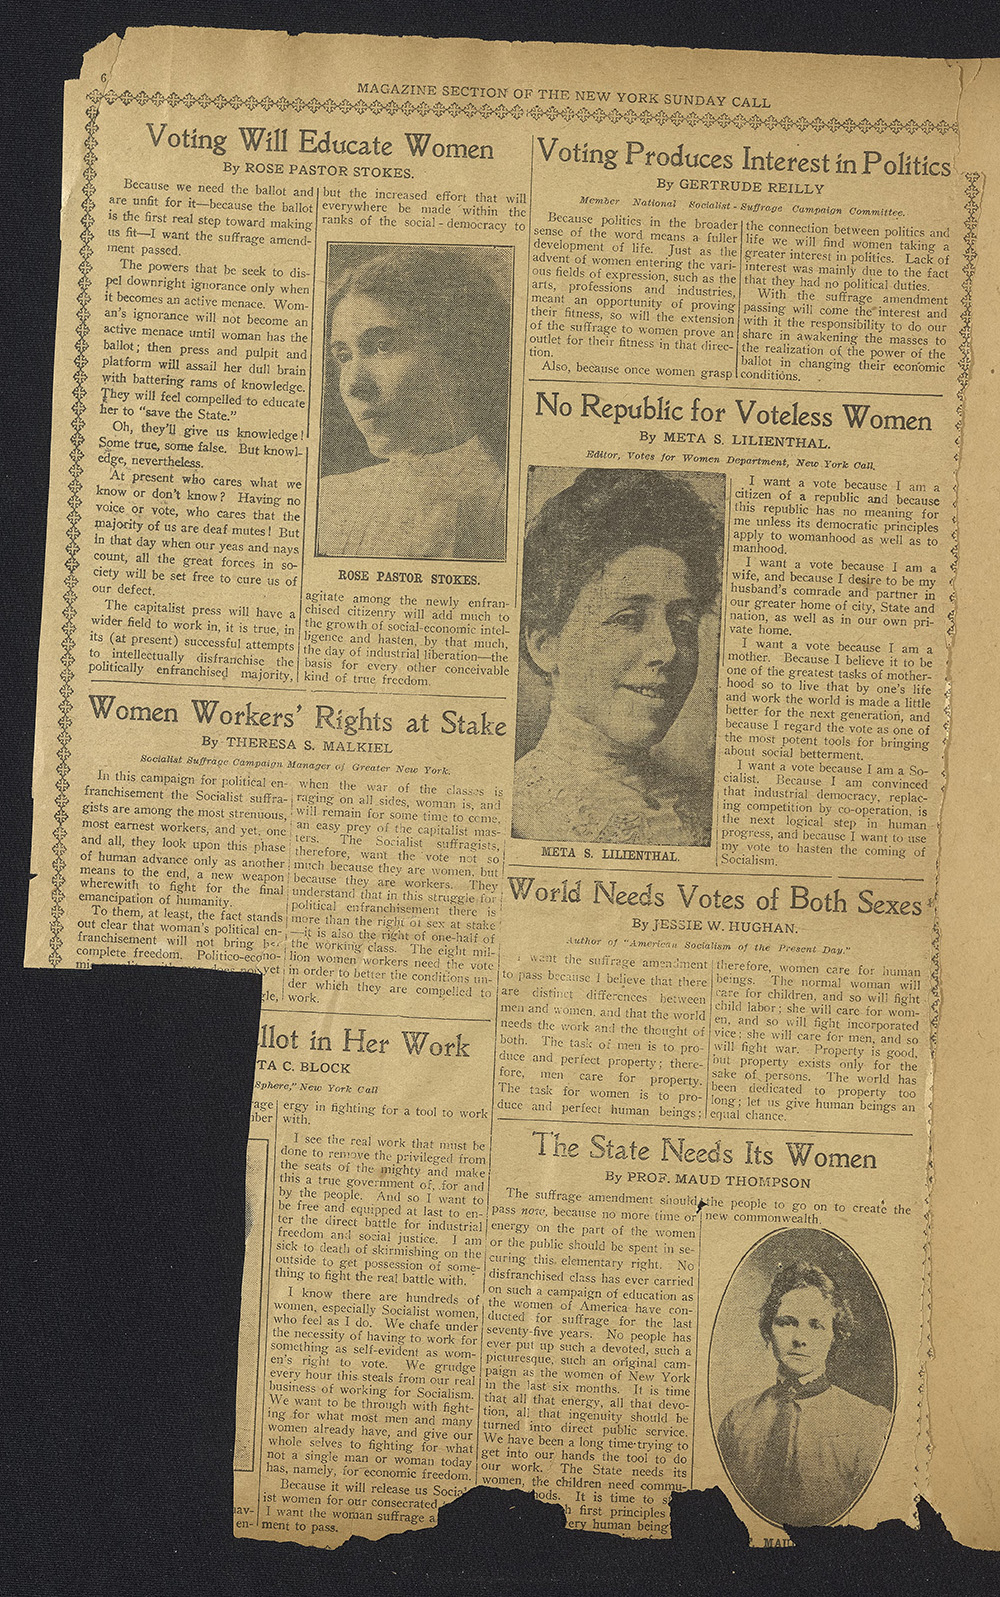 Newspaper clipping circa 1915 - Anne Sullivan Macy's scrapbook. All the articles are in support of women's suffrage, and three include black and white portraits of their authors, all white women.